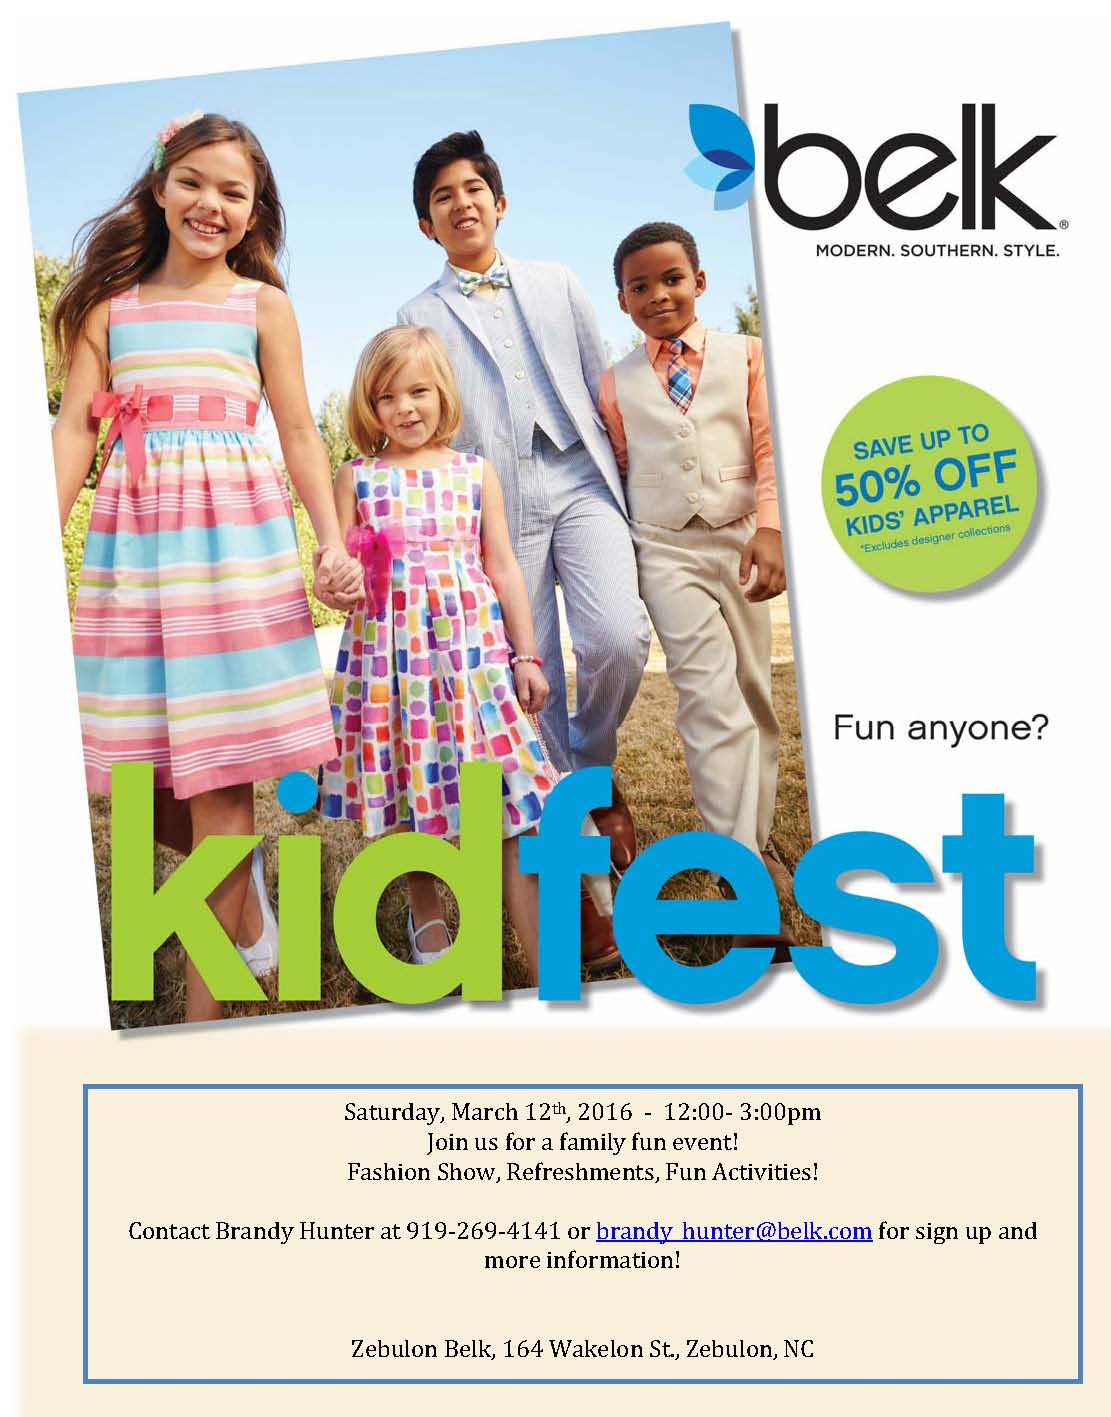 2016 KidFest Flyer. Source: Brandy Hunter, Belk, Zebulon NC.